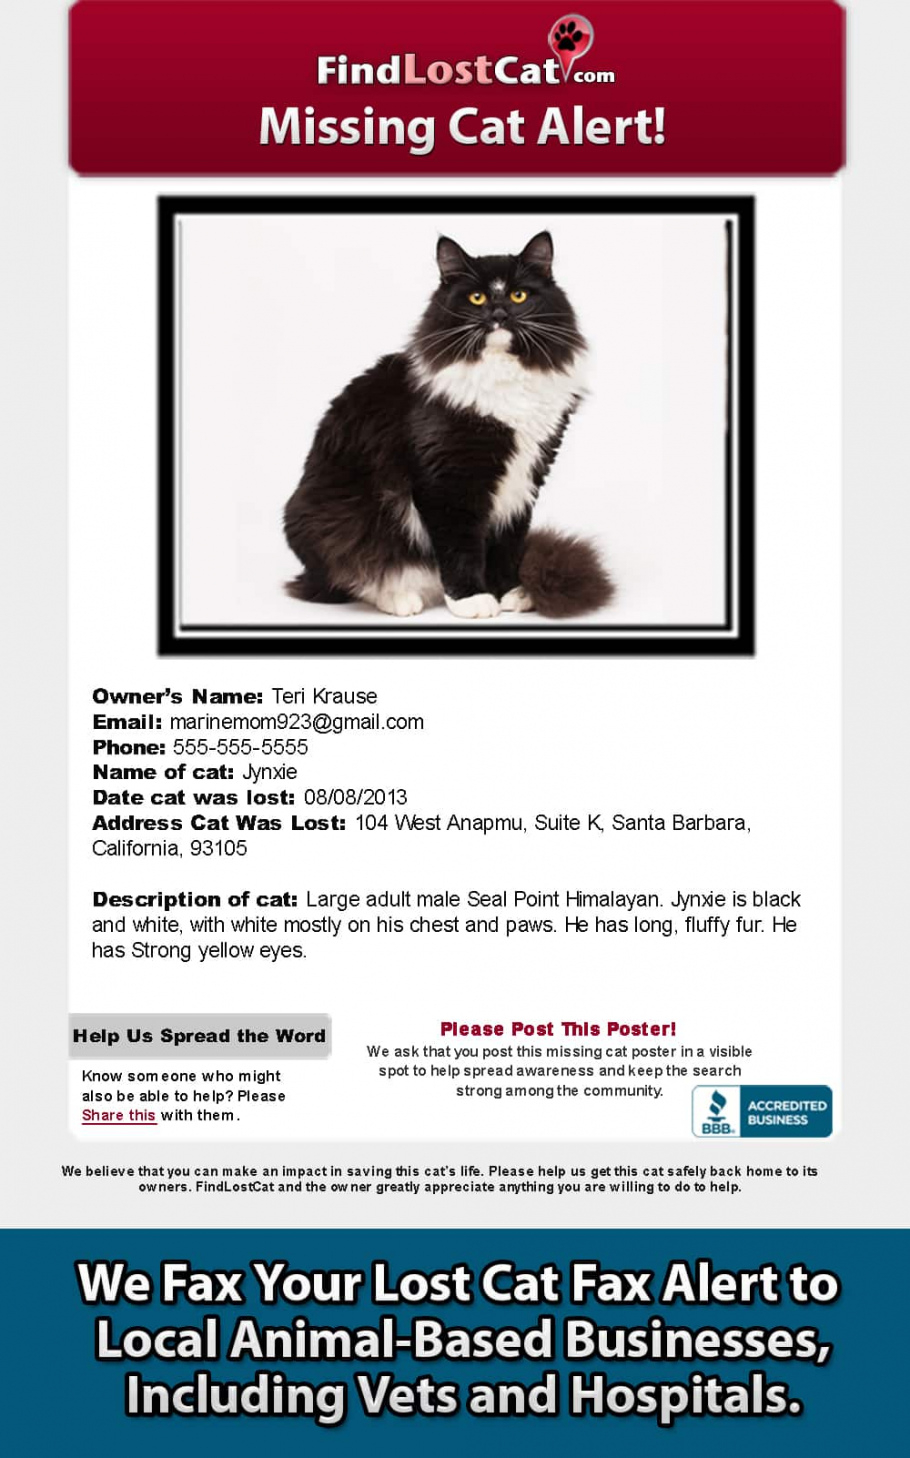 editable find lost cat  the 1 lost & found cat website in america found cat poster template doc